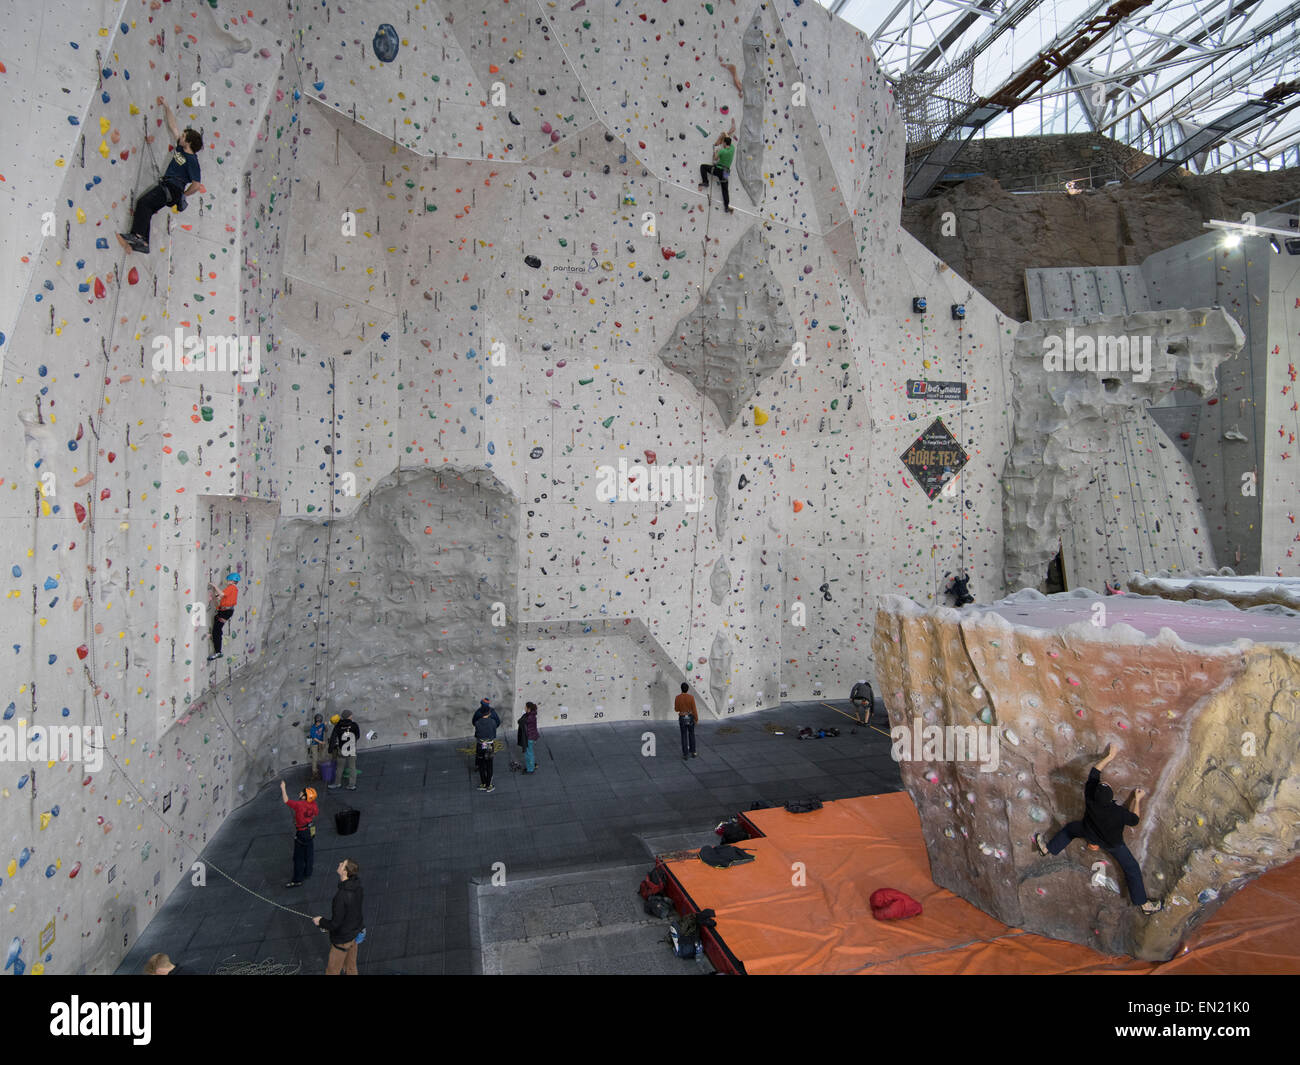 Edinburgh International Climbing Arena - World's largest indoor climbing area. Ratho, nr Edinburgh, Scotland. - Stock Image